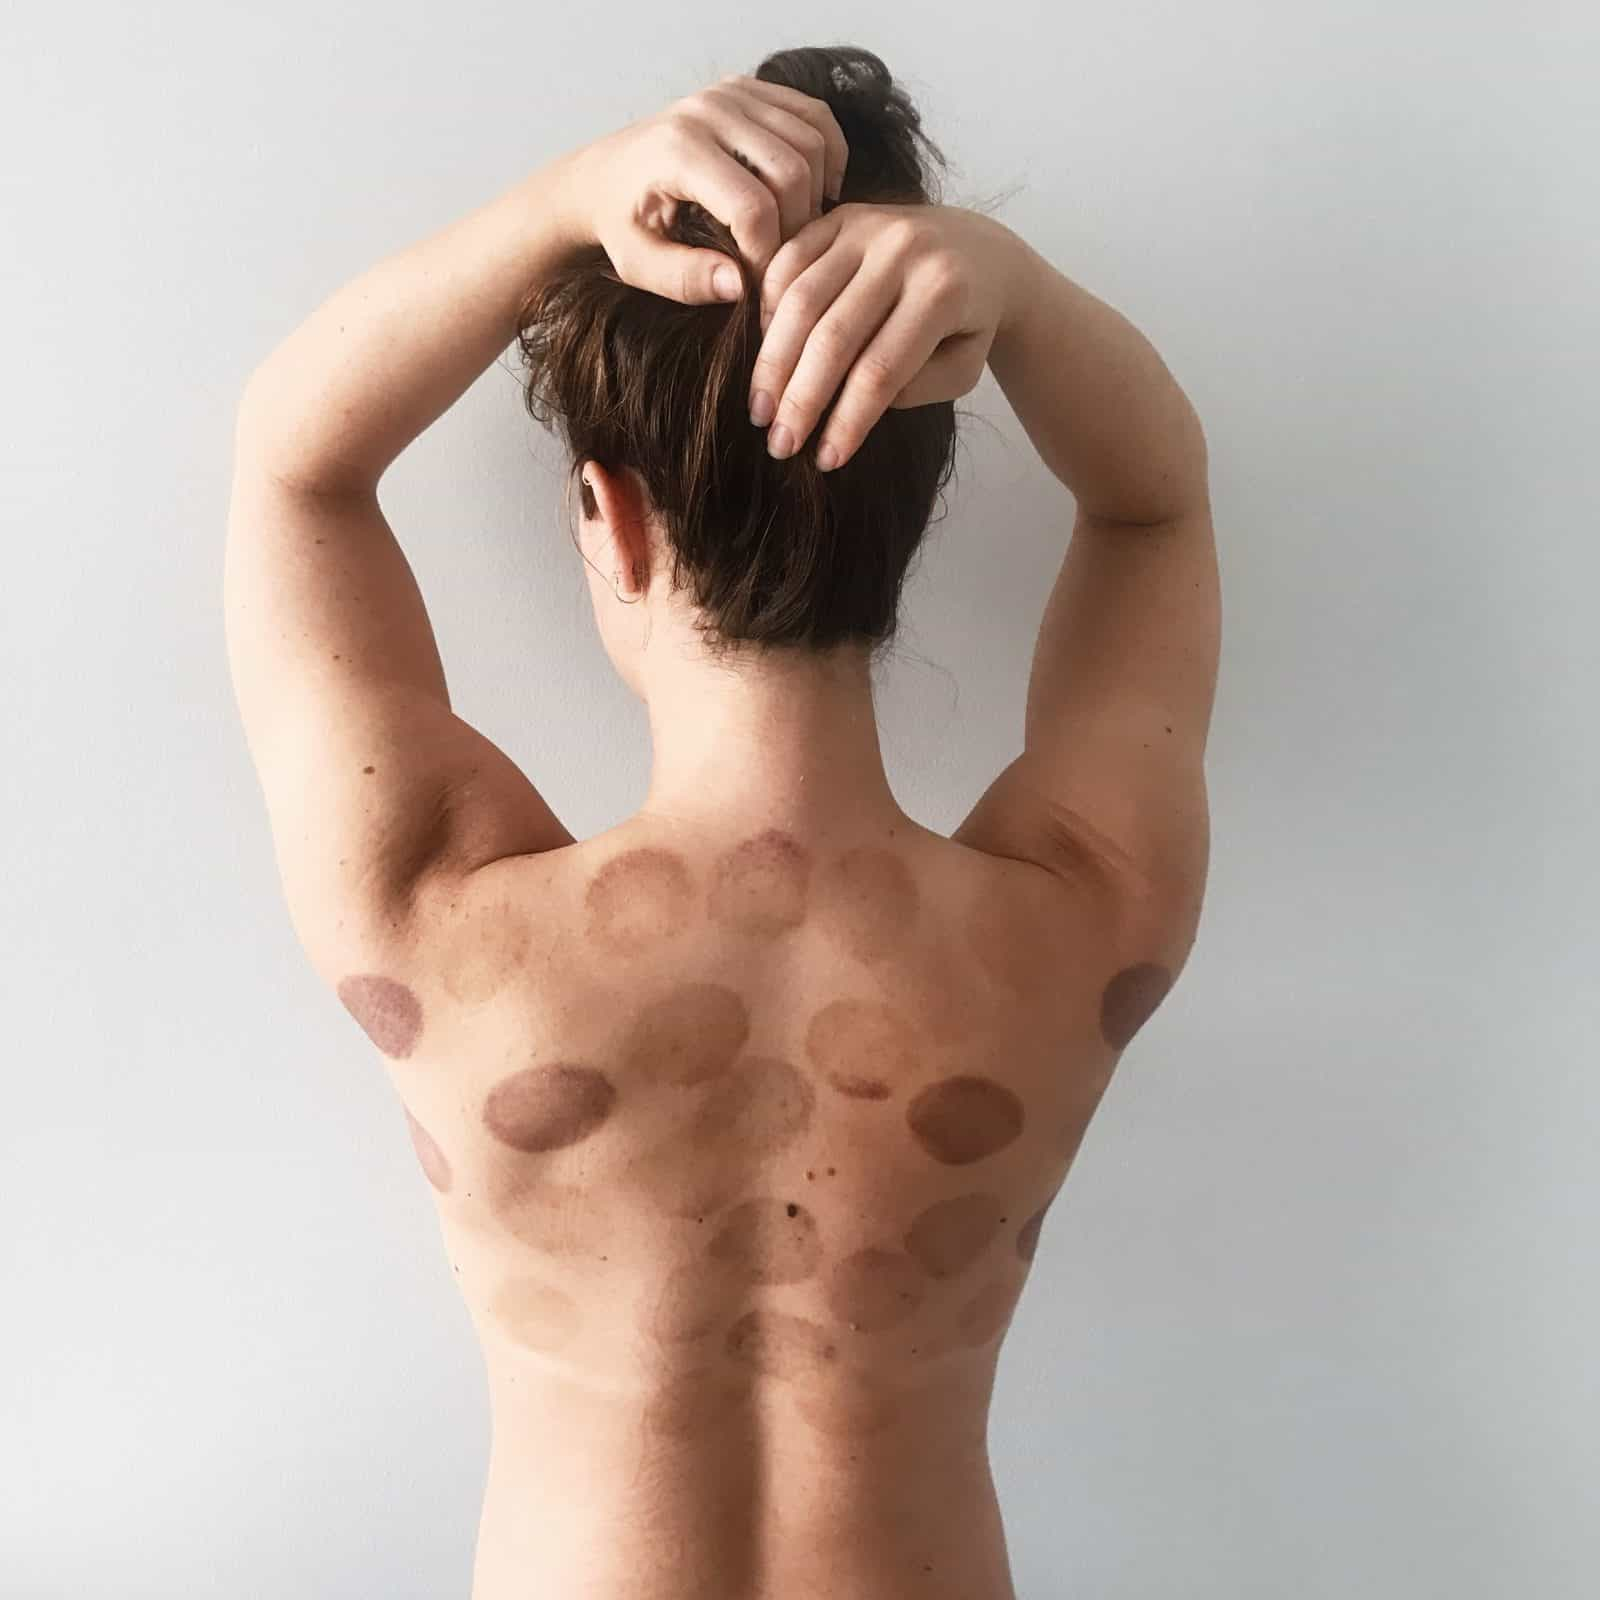 My Cupping Experience